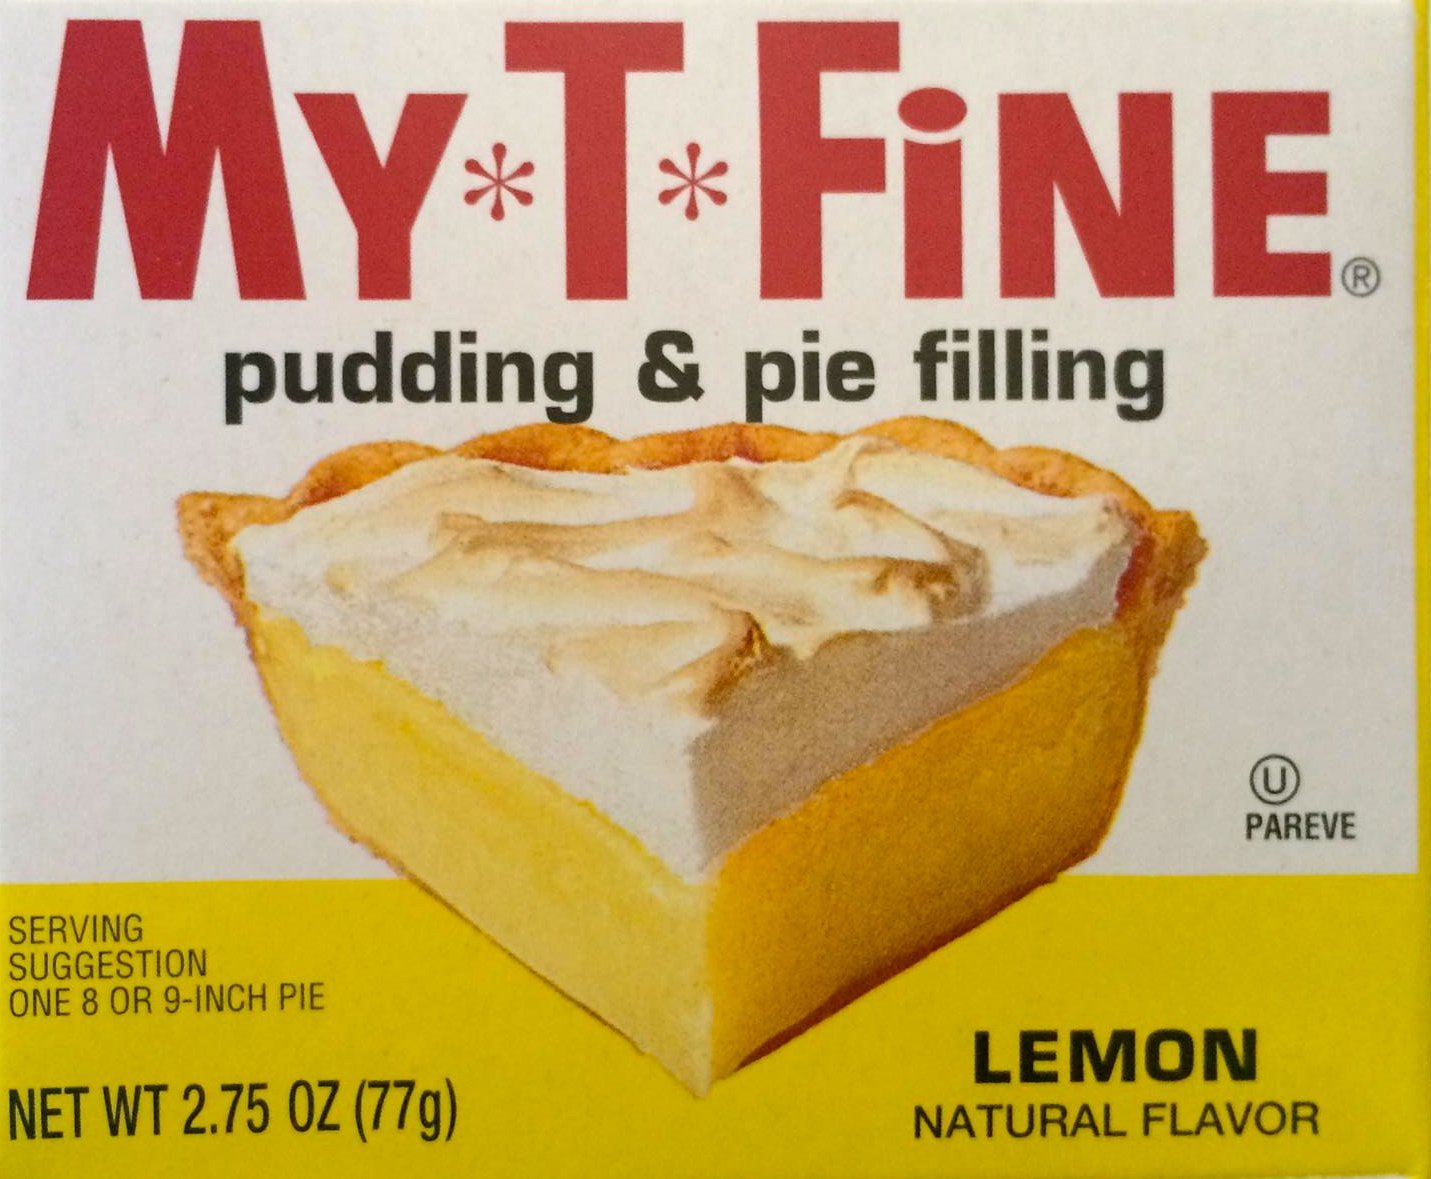 My T Fine lemon Pudding & Pie Filling 12 Box Case,  2.75 Oz Boxes